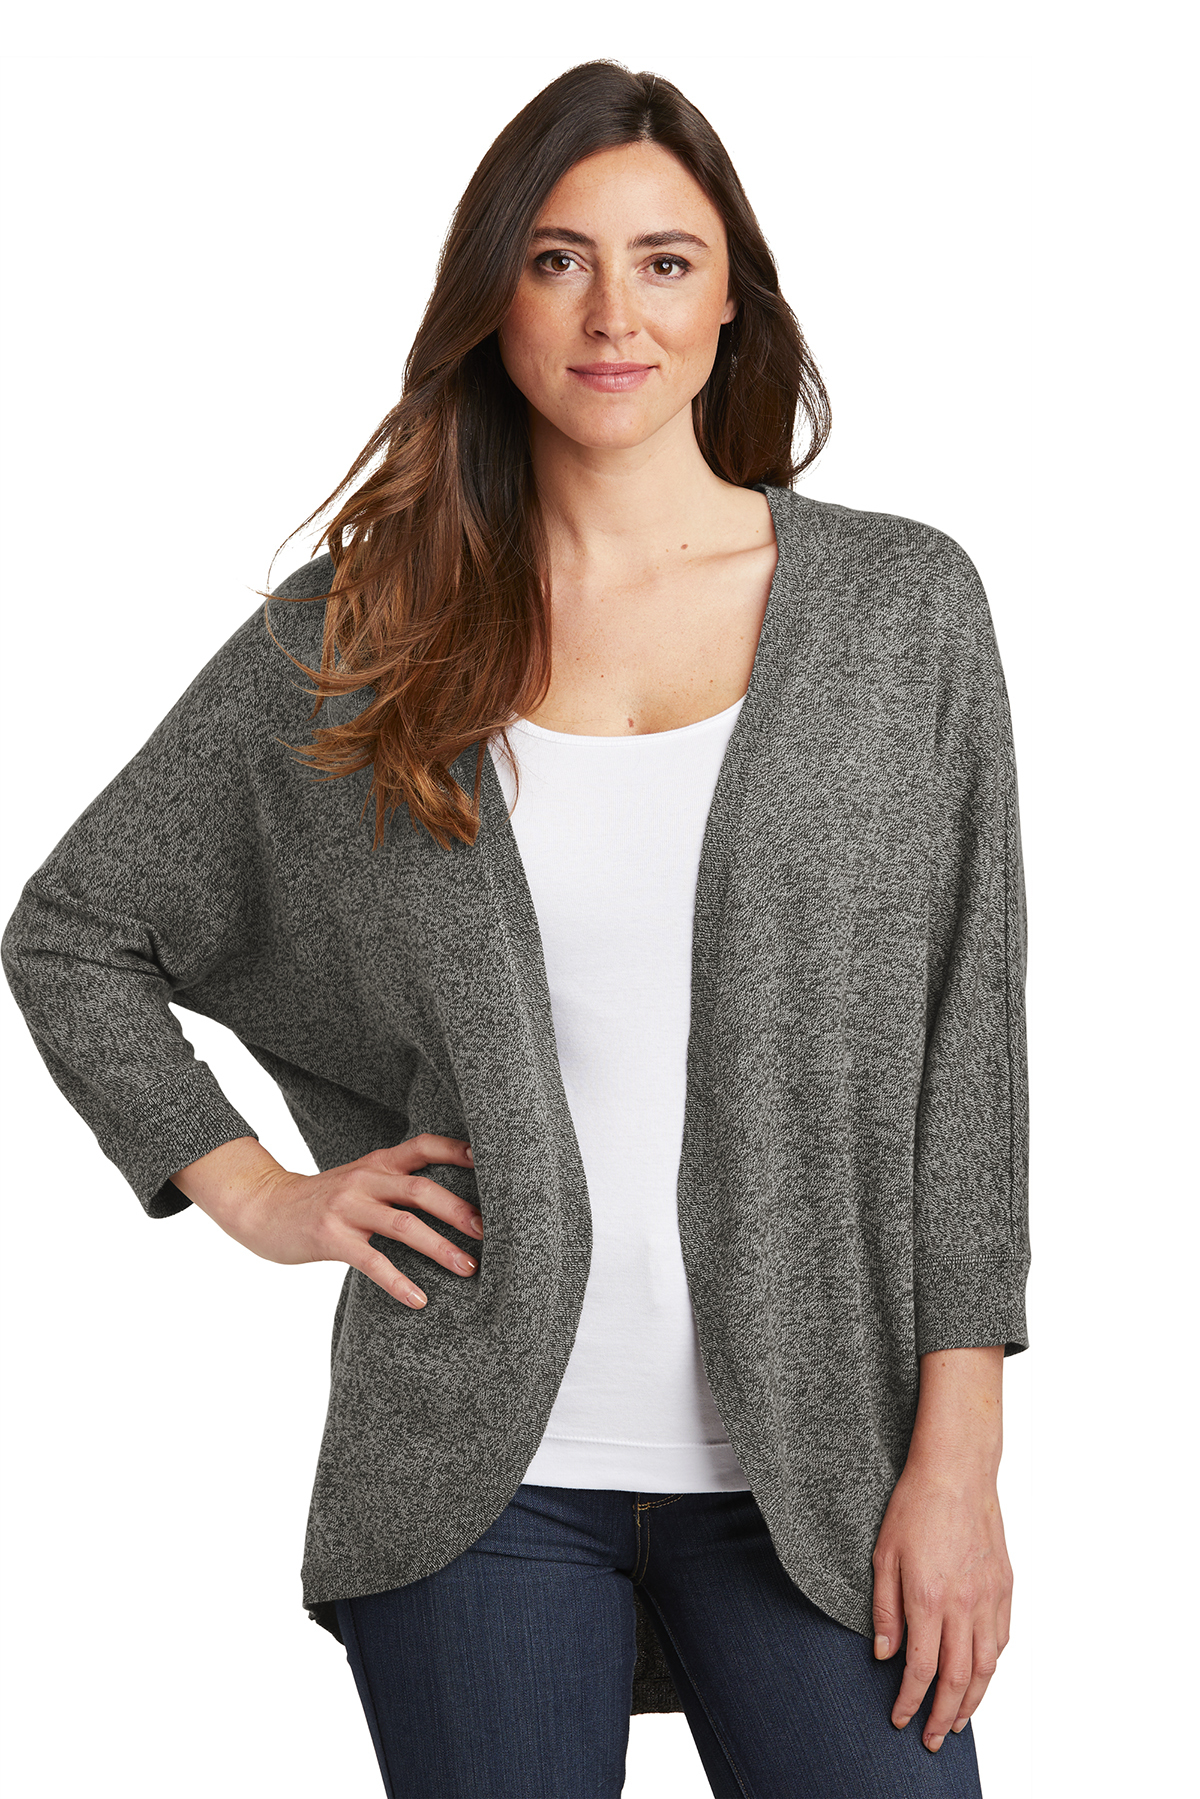 click to view Warm Grey Marl